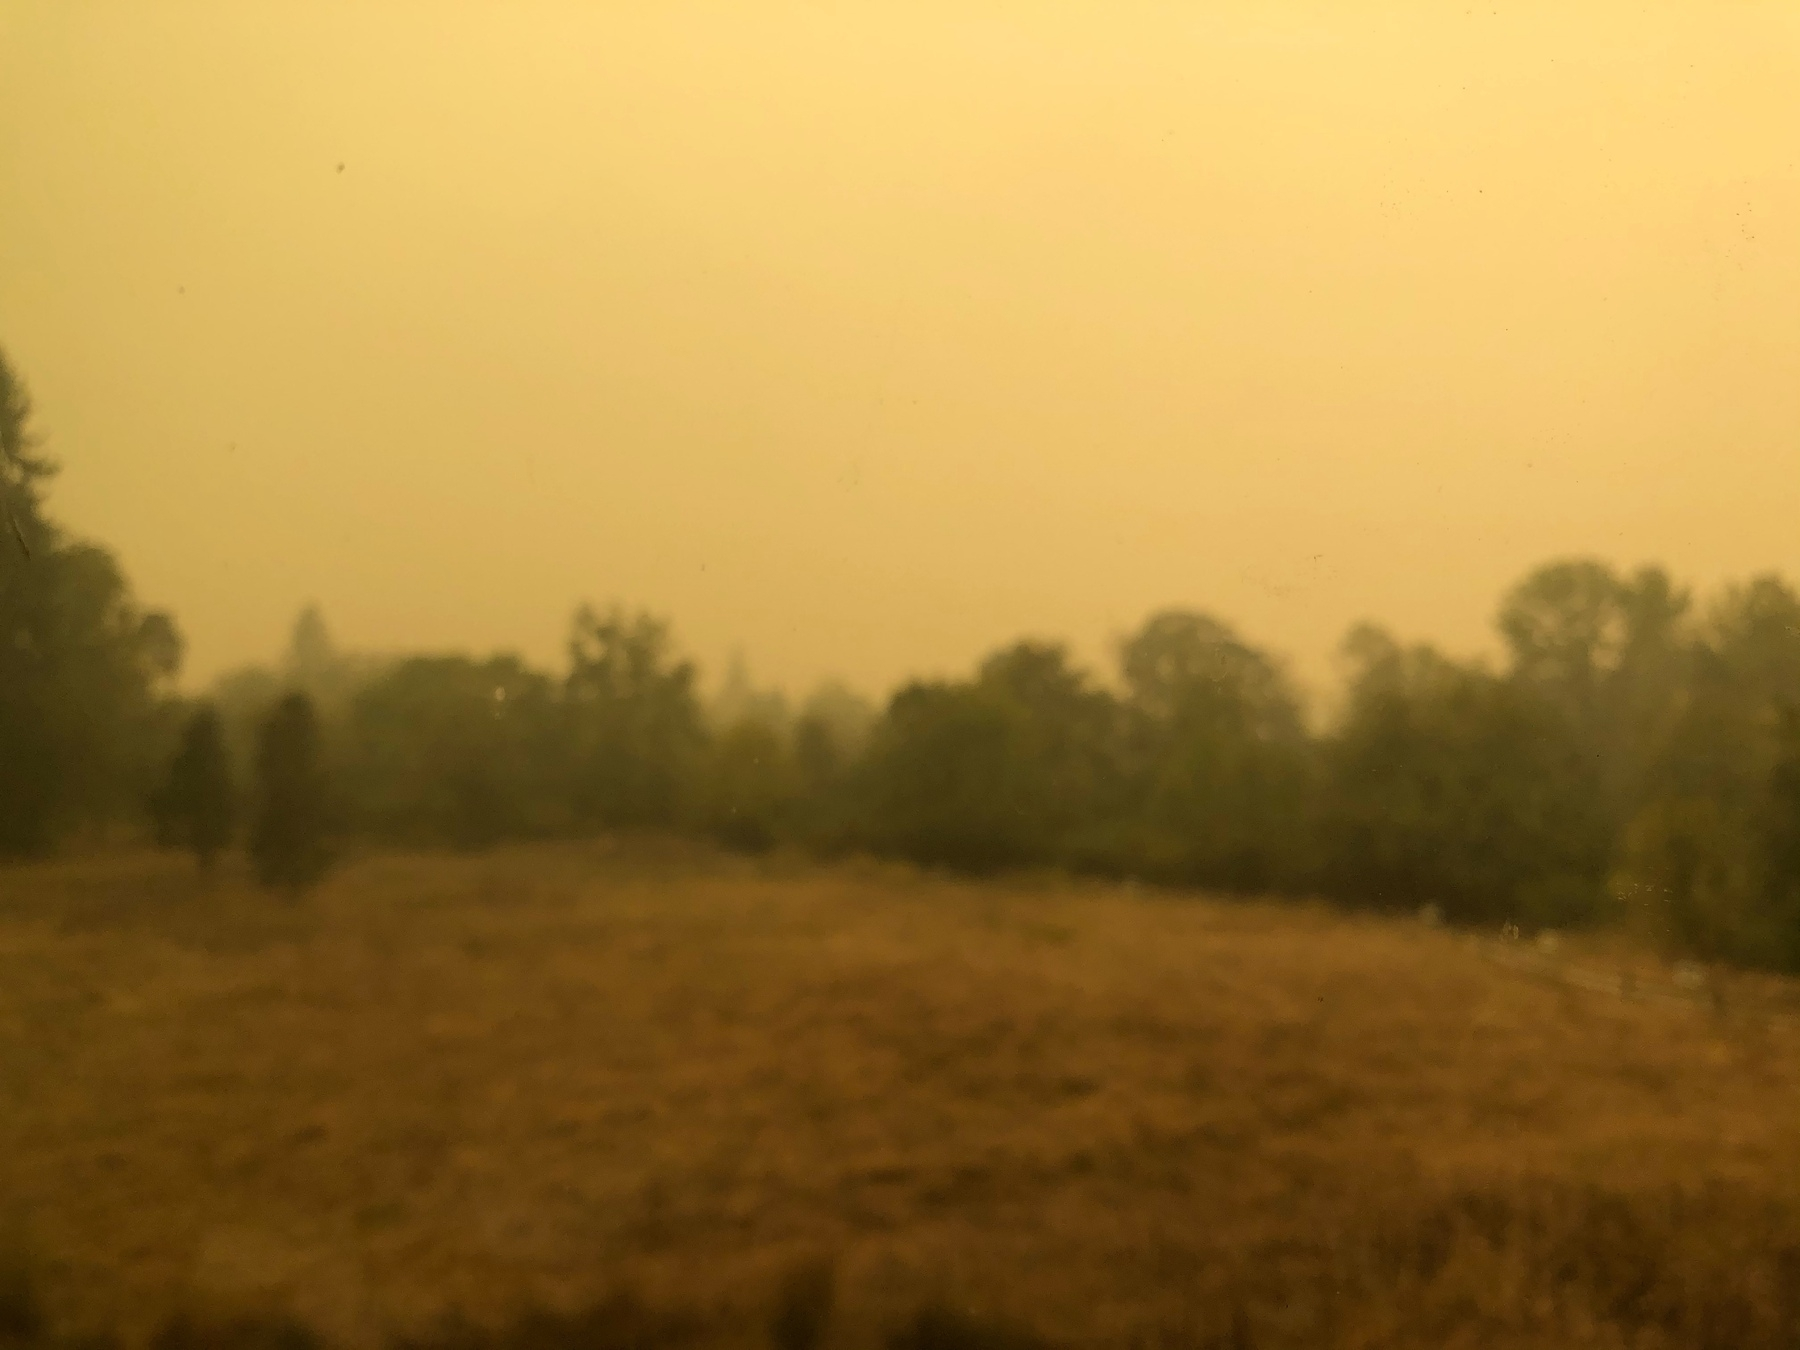 Blurry photo of a dry brown field surrounded by trees and a yellow sky.